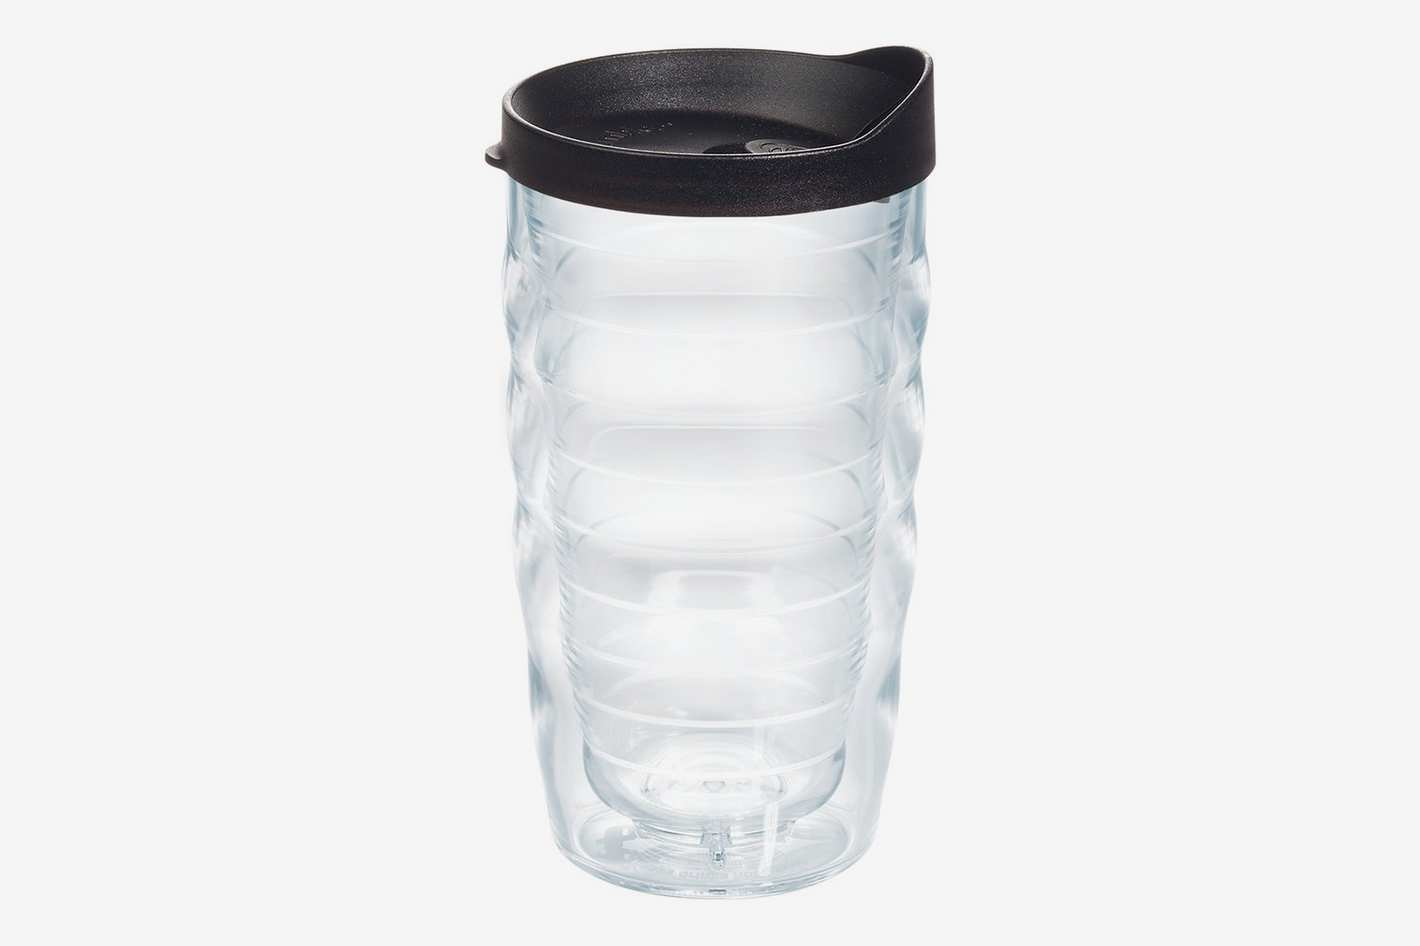 Tervis Clear & Colorful, Clear Tumbler with Black Lid